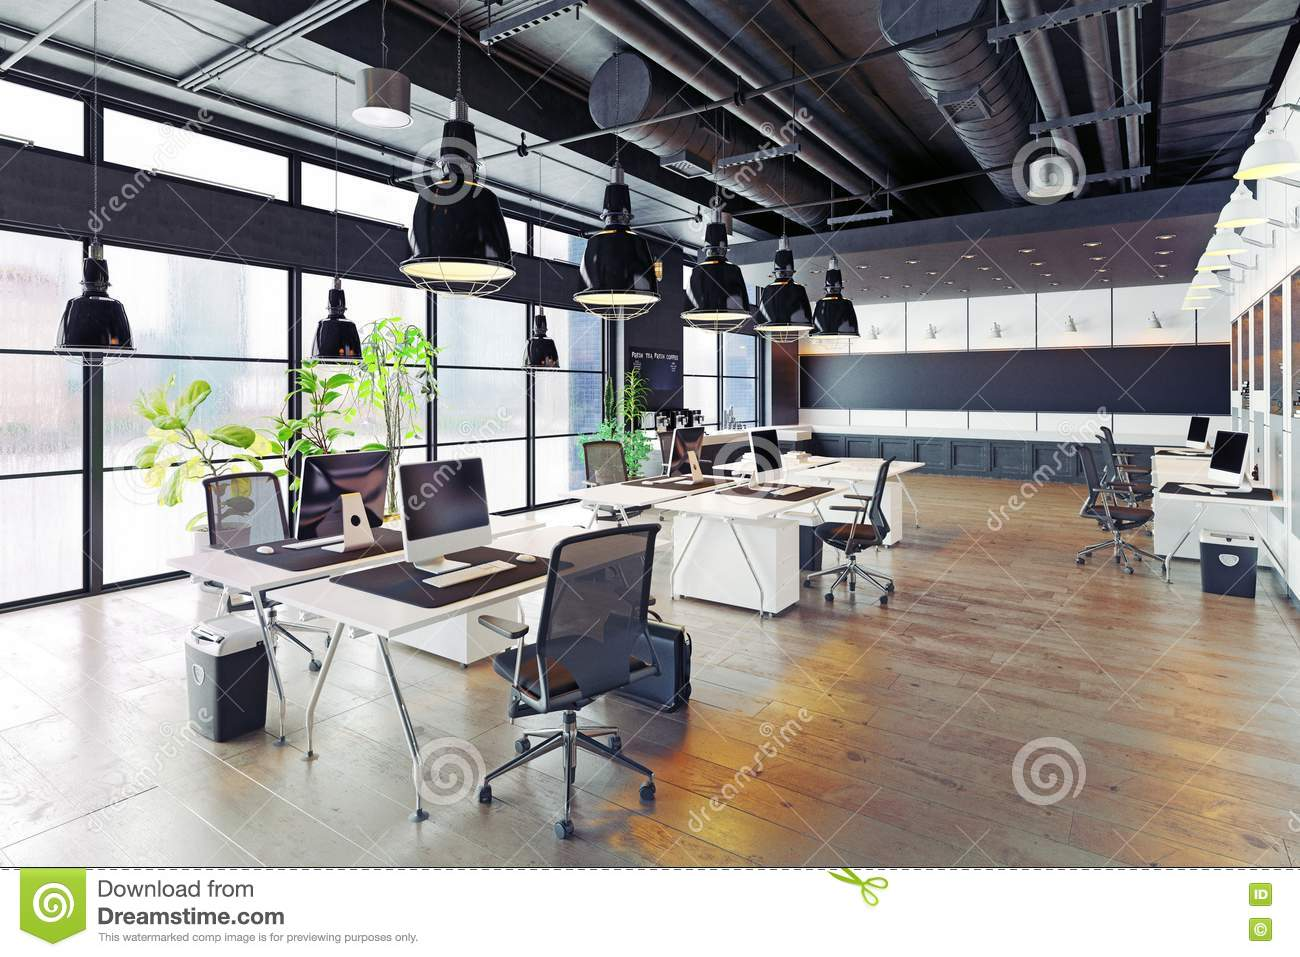 Cozy Modern Office Interior Inside Modern Cozy Loft Office Interior 3d Rendering Stock Illustration Illustration Of Glass